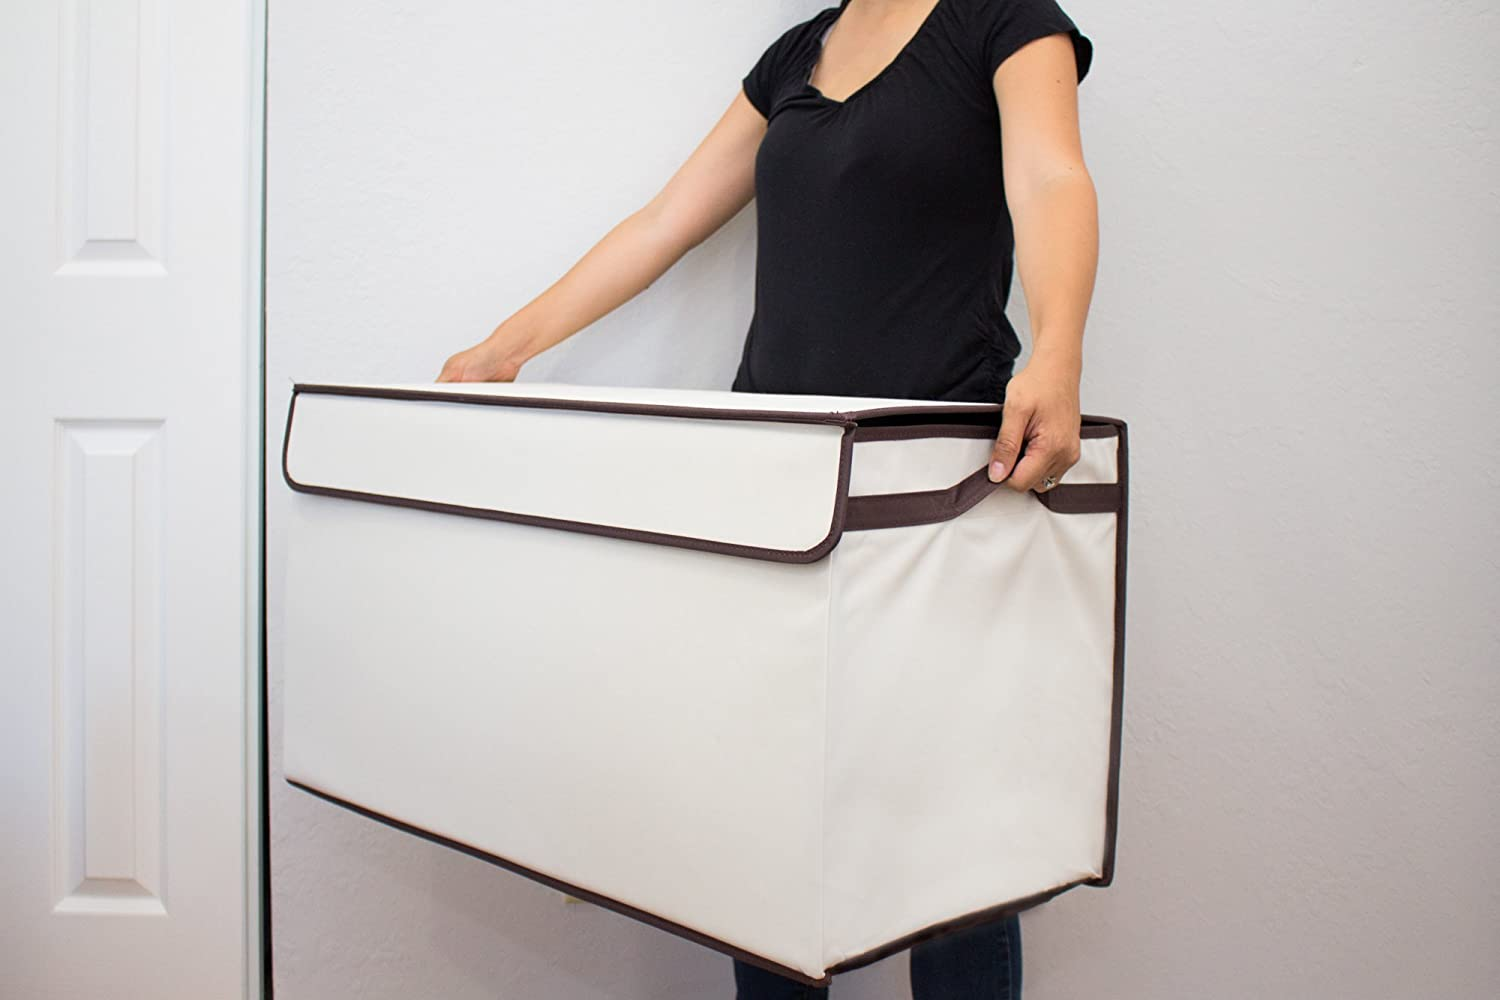 Extra Tough 600 Denier Collapsible with Flip-Top Lid Bigger Large Gray and White Sturdier Toy Chest Great Useful Stuff